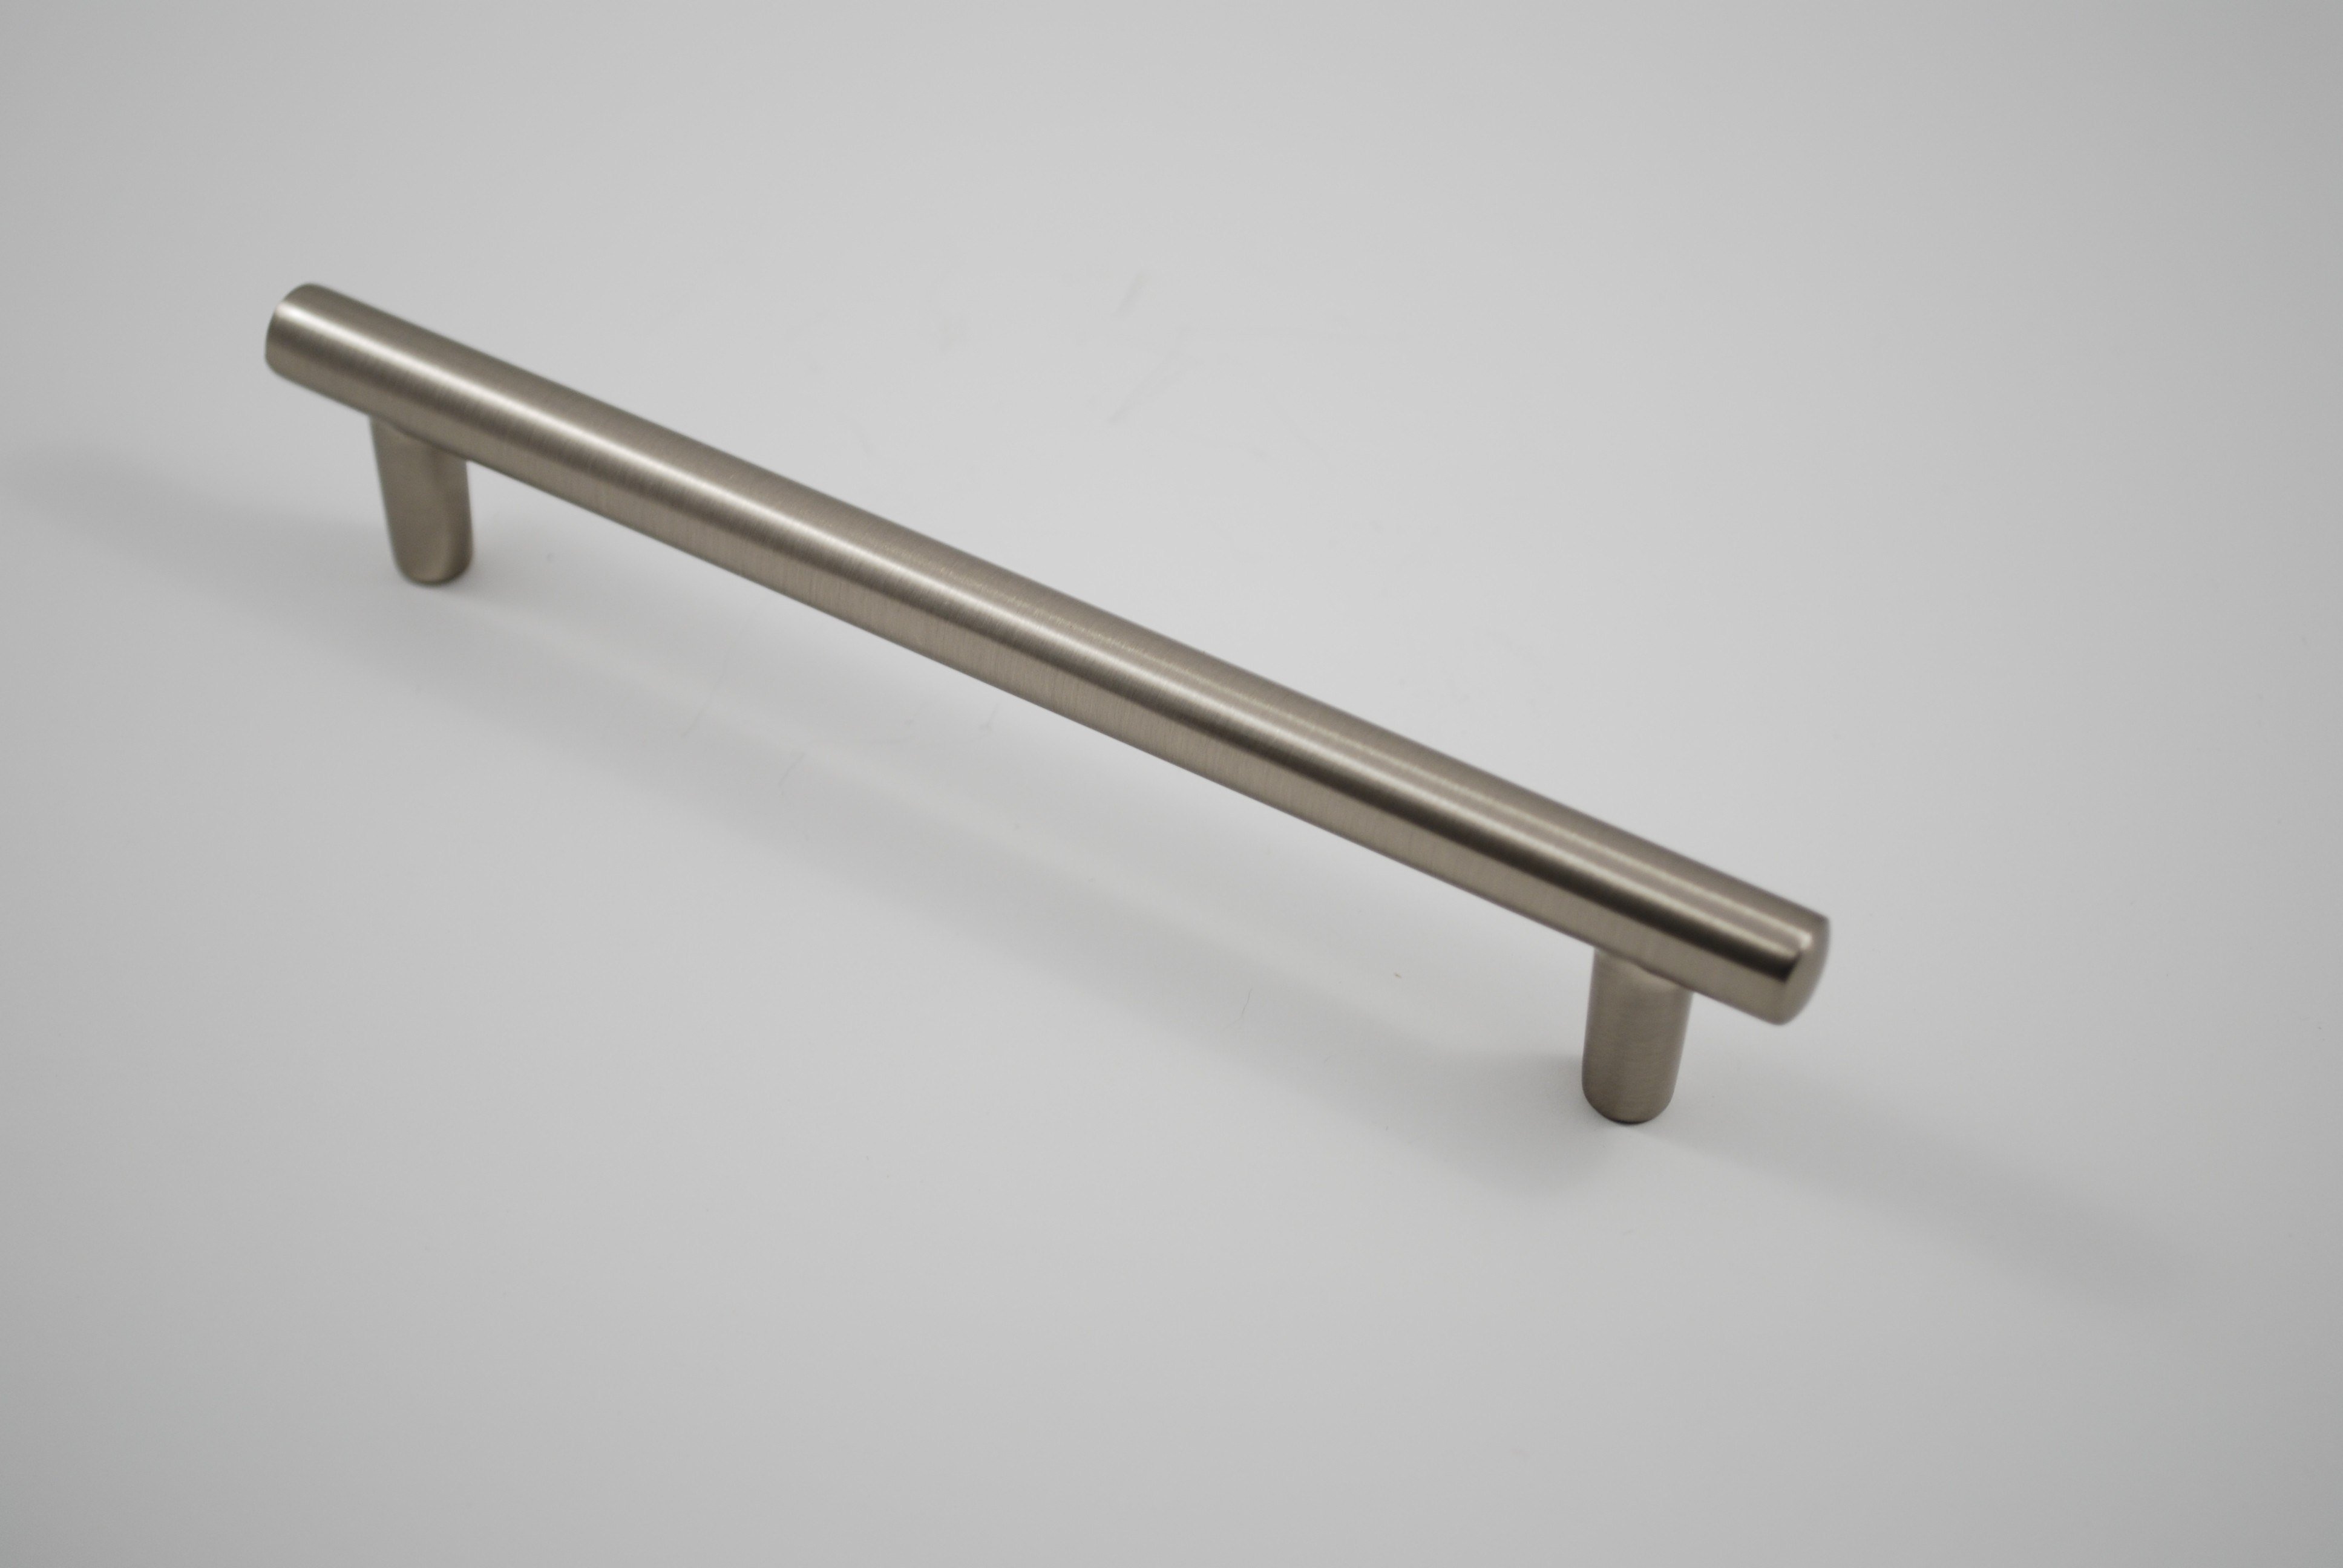 RESIDENTIAL ESSENTIALS 10336 CABINET PULL